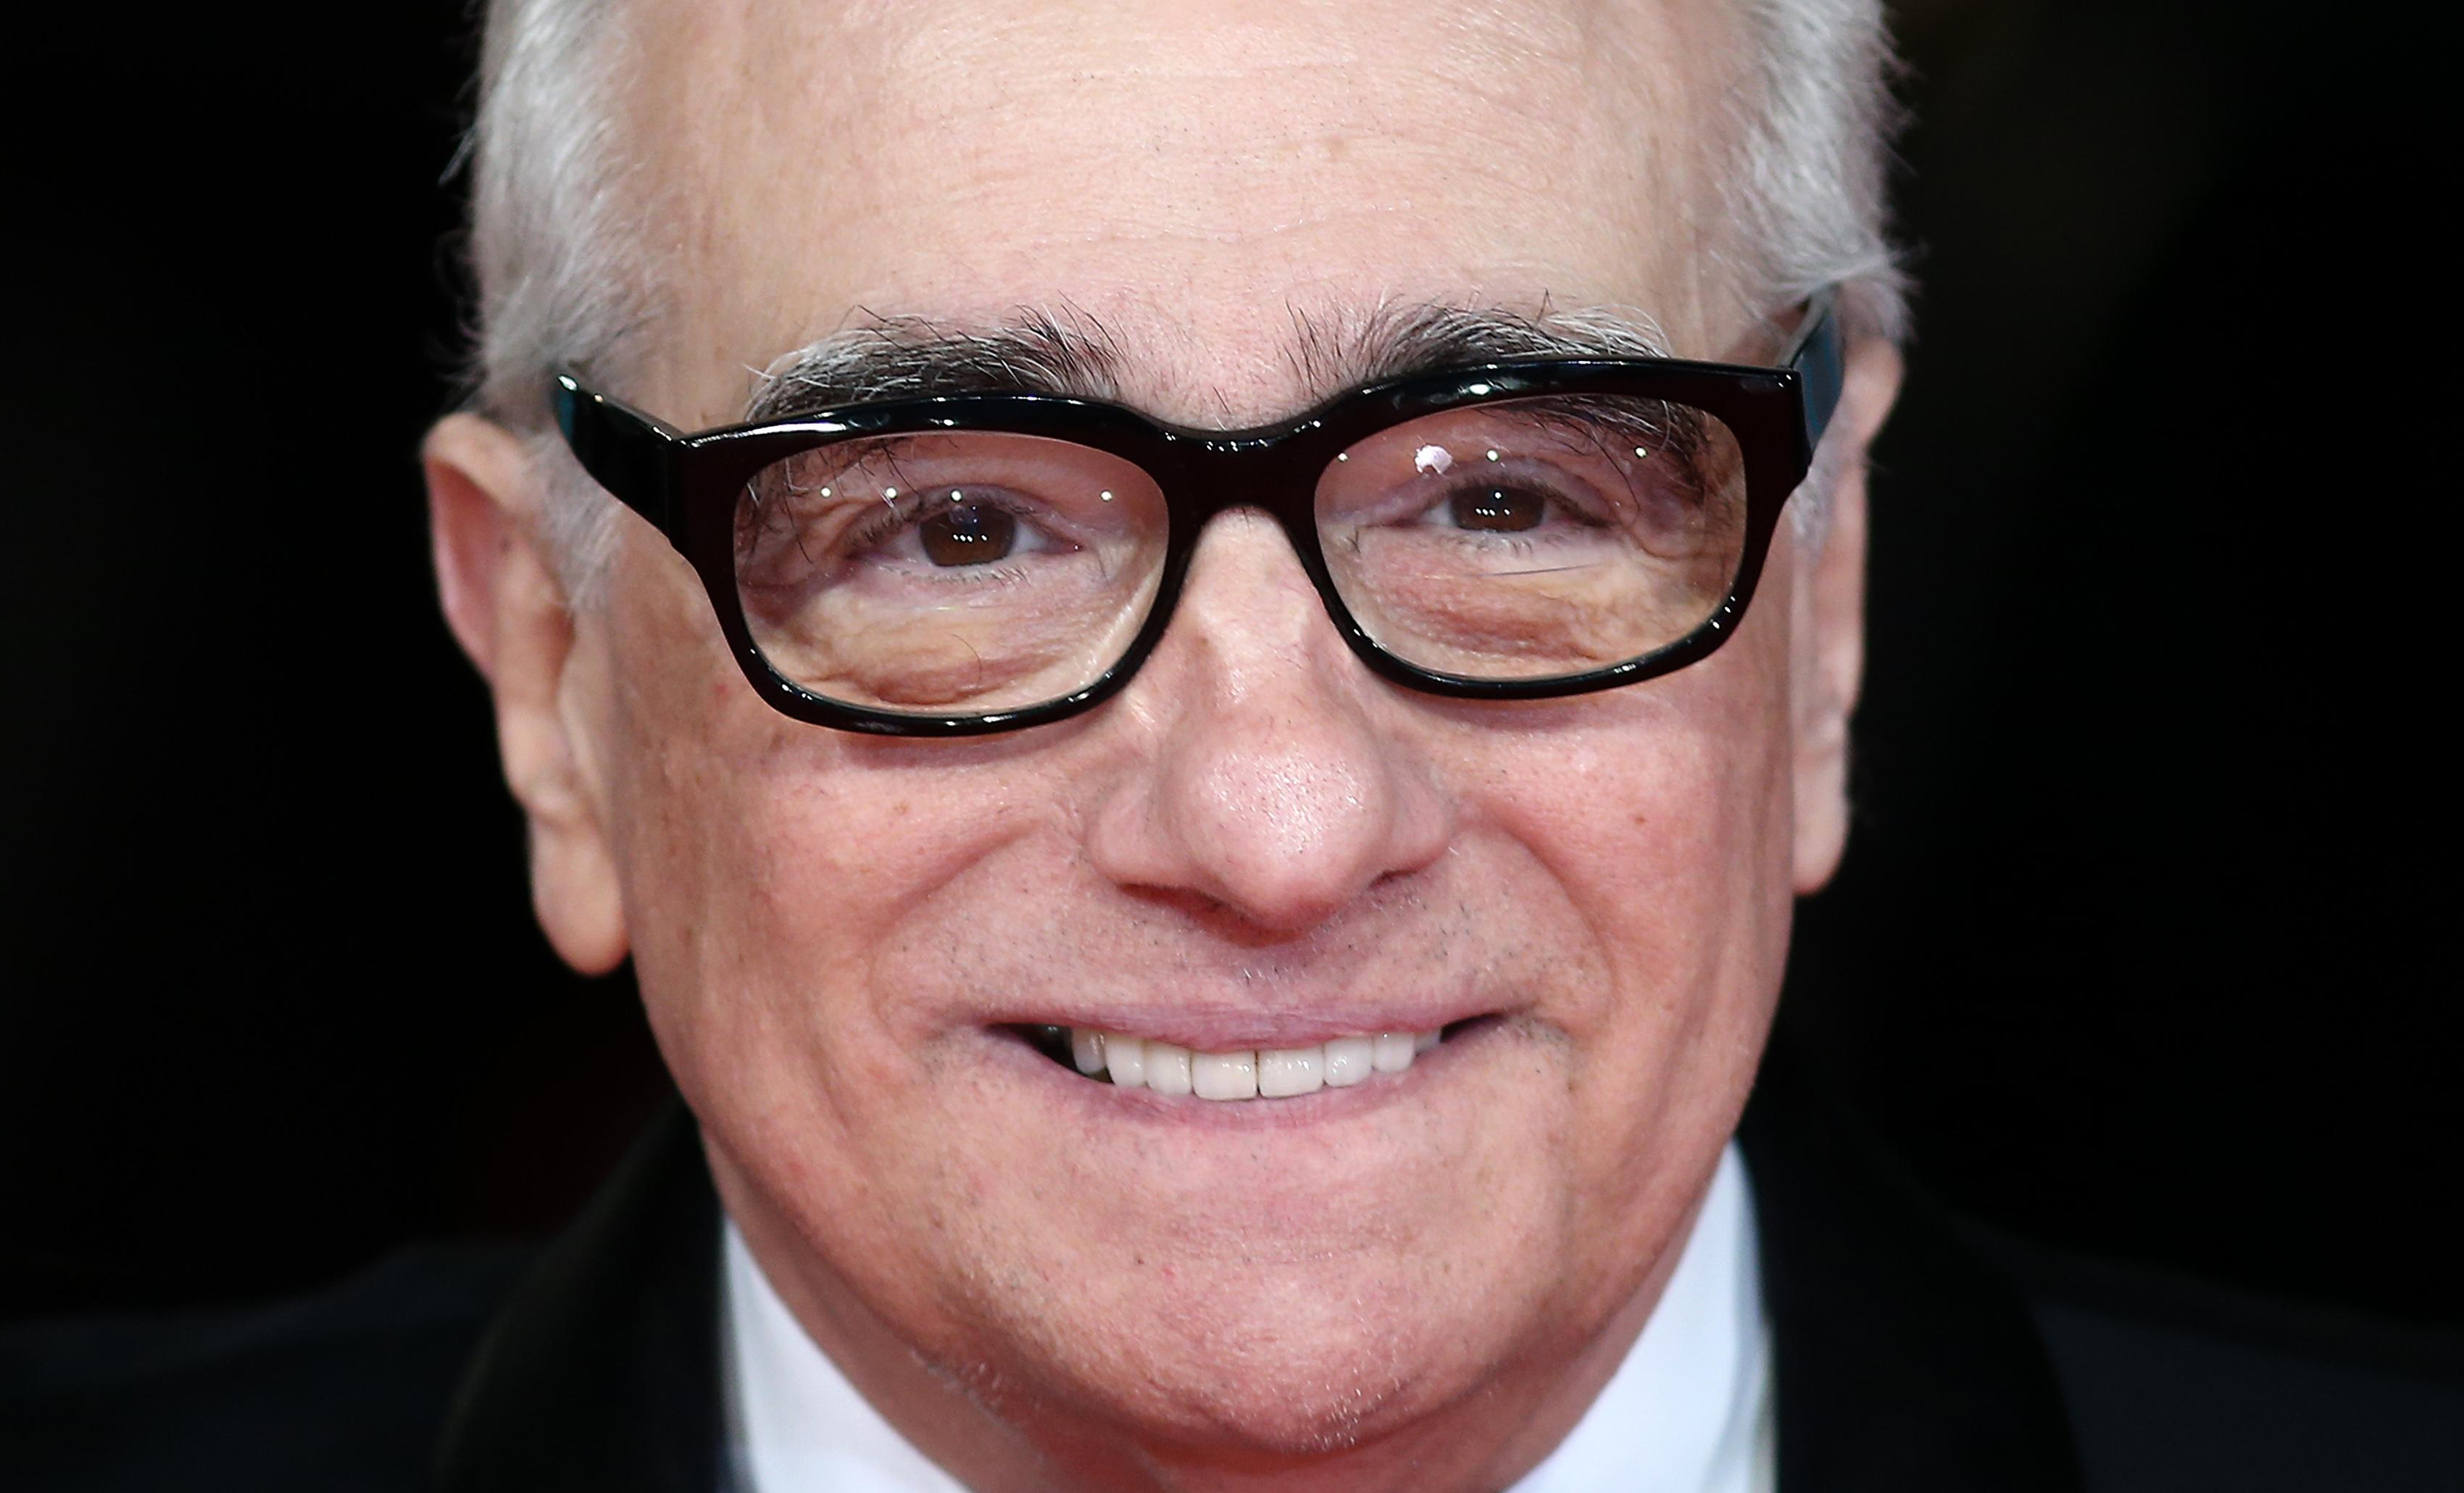 Scorsese says movie 'Silence' inspired by religion